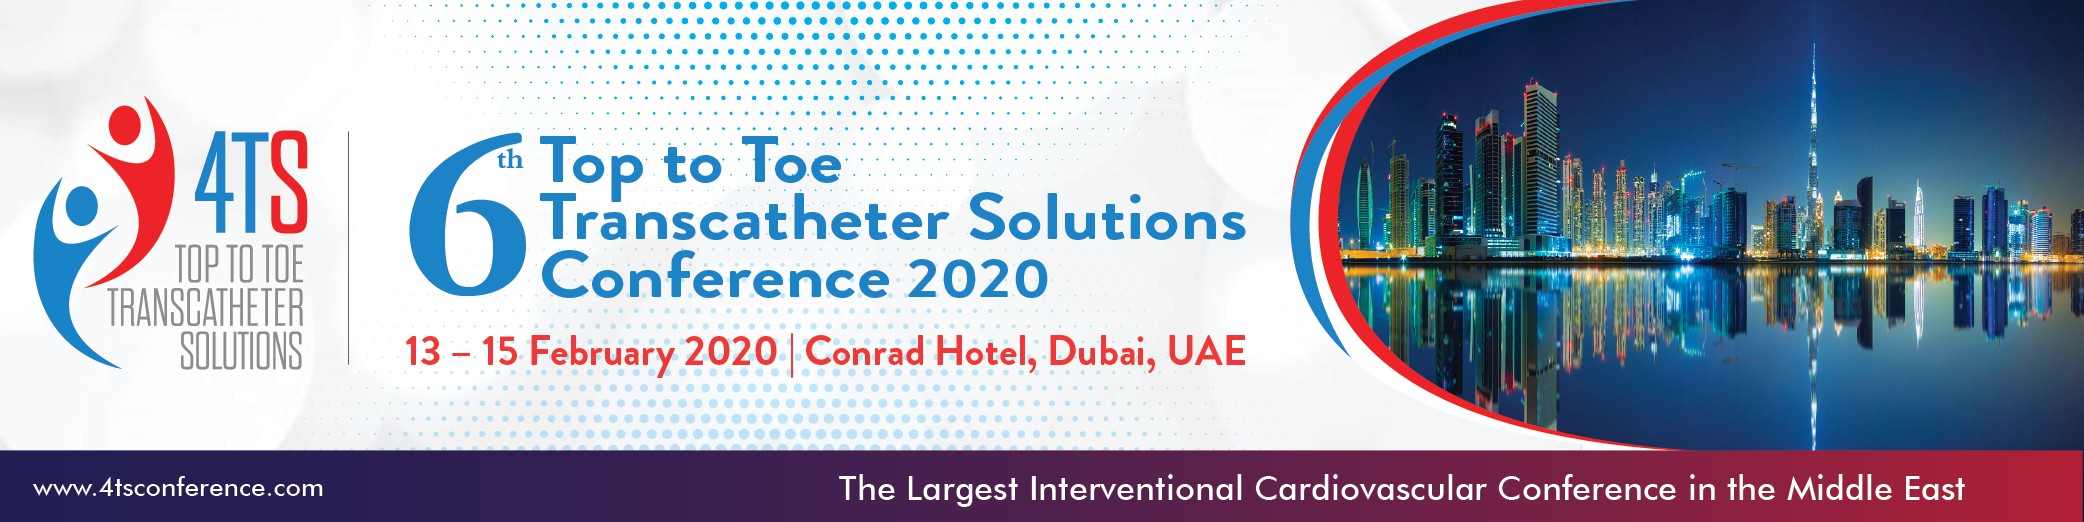 The 6th Top to Toe Transcatheter Solutions Conference 2020